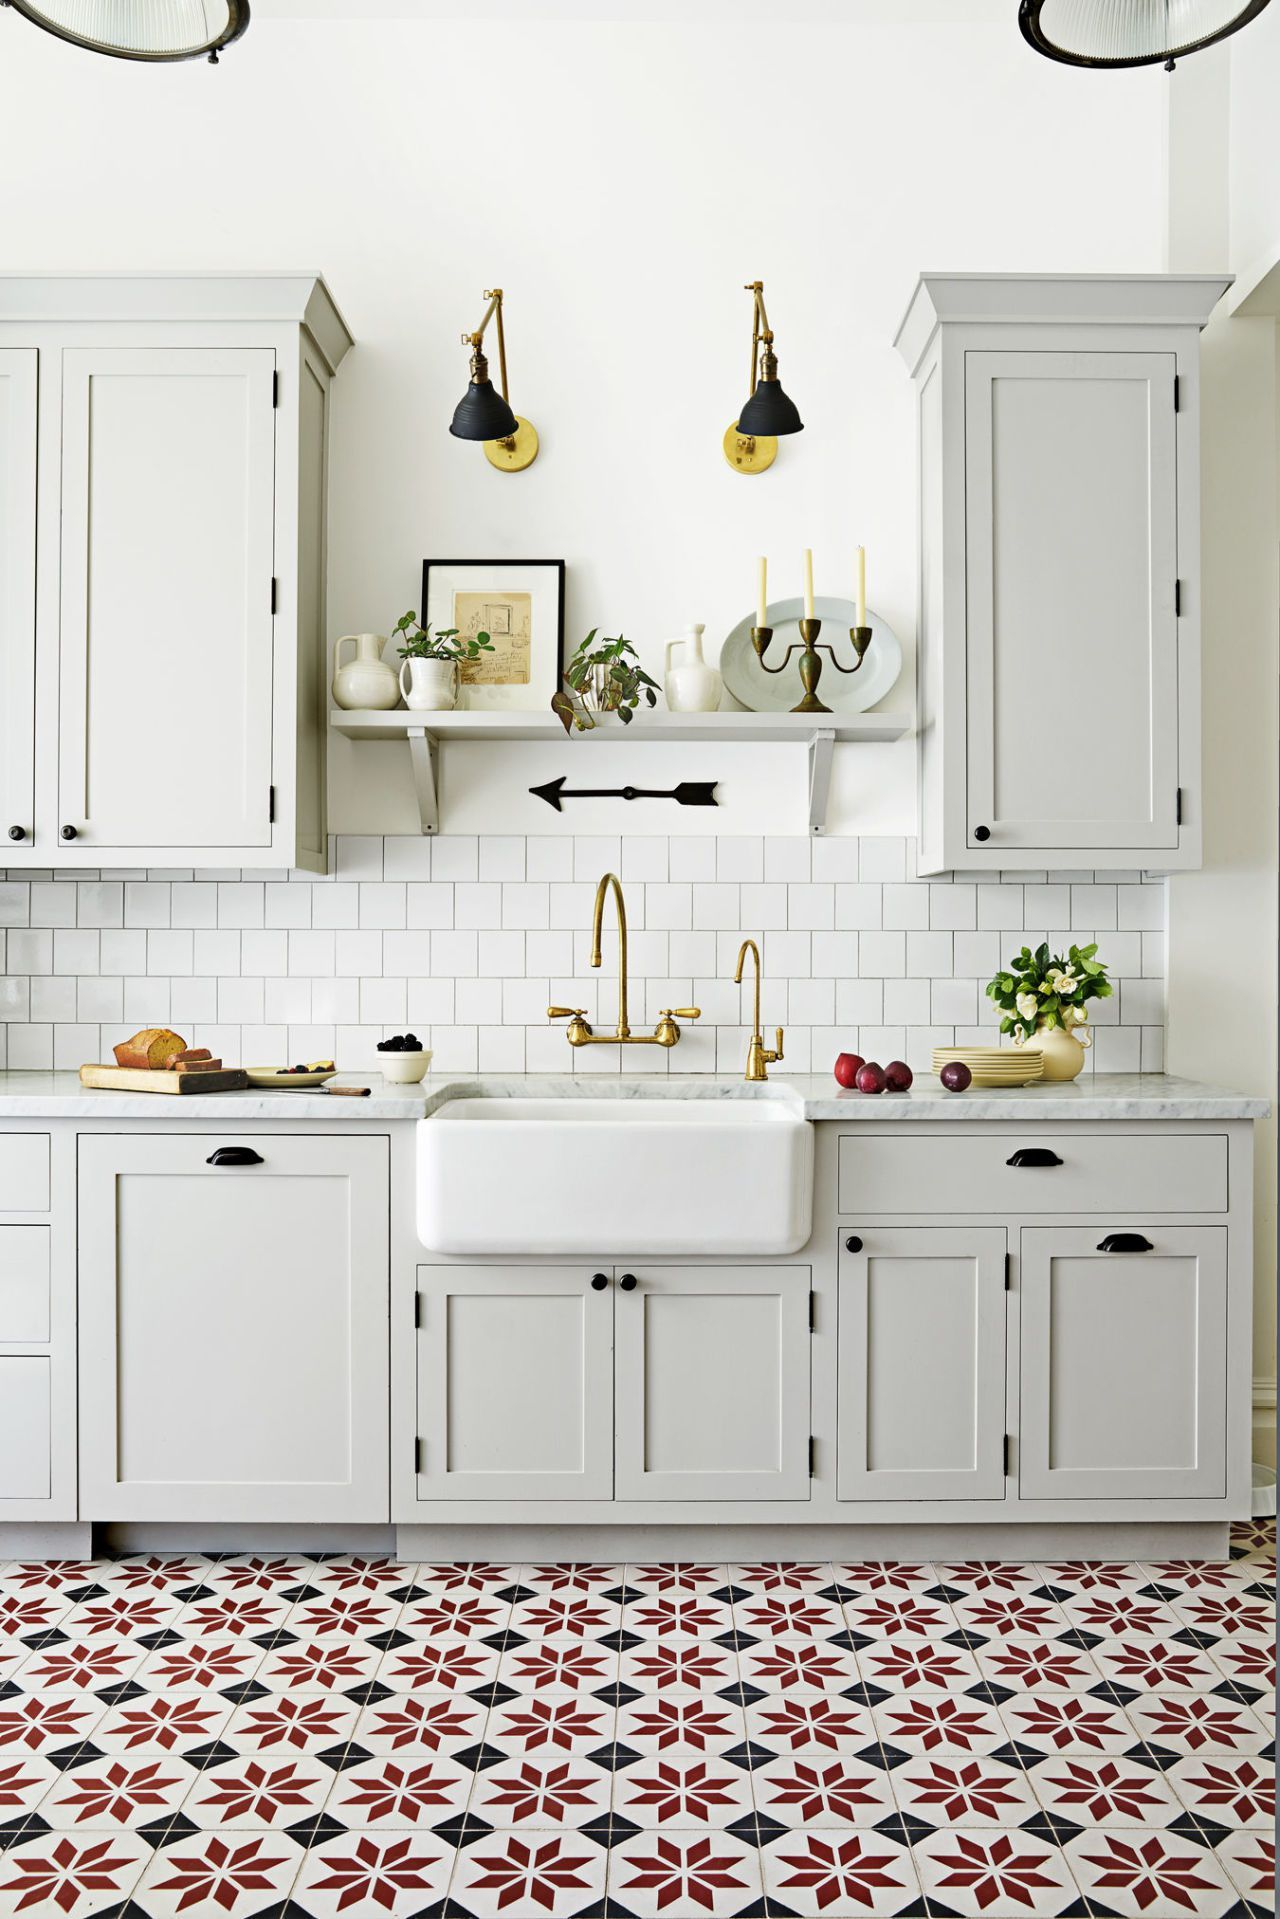 Download Wallpaper What To Use On Kitchen Walls Instead Of Tiles